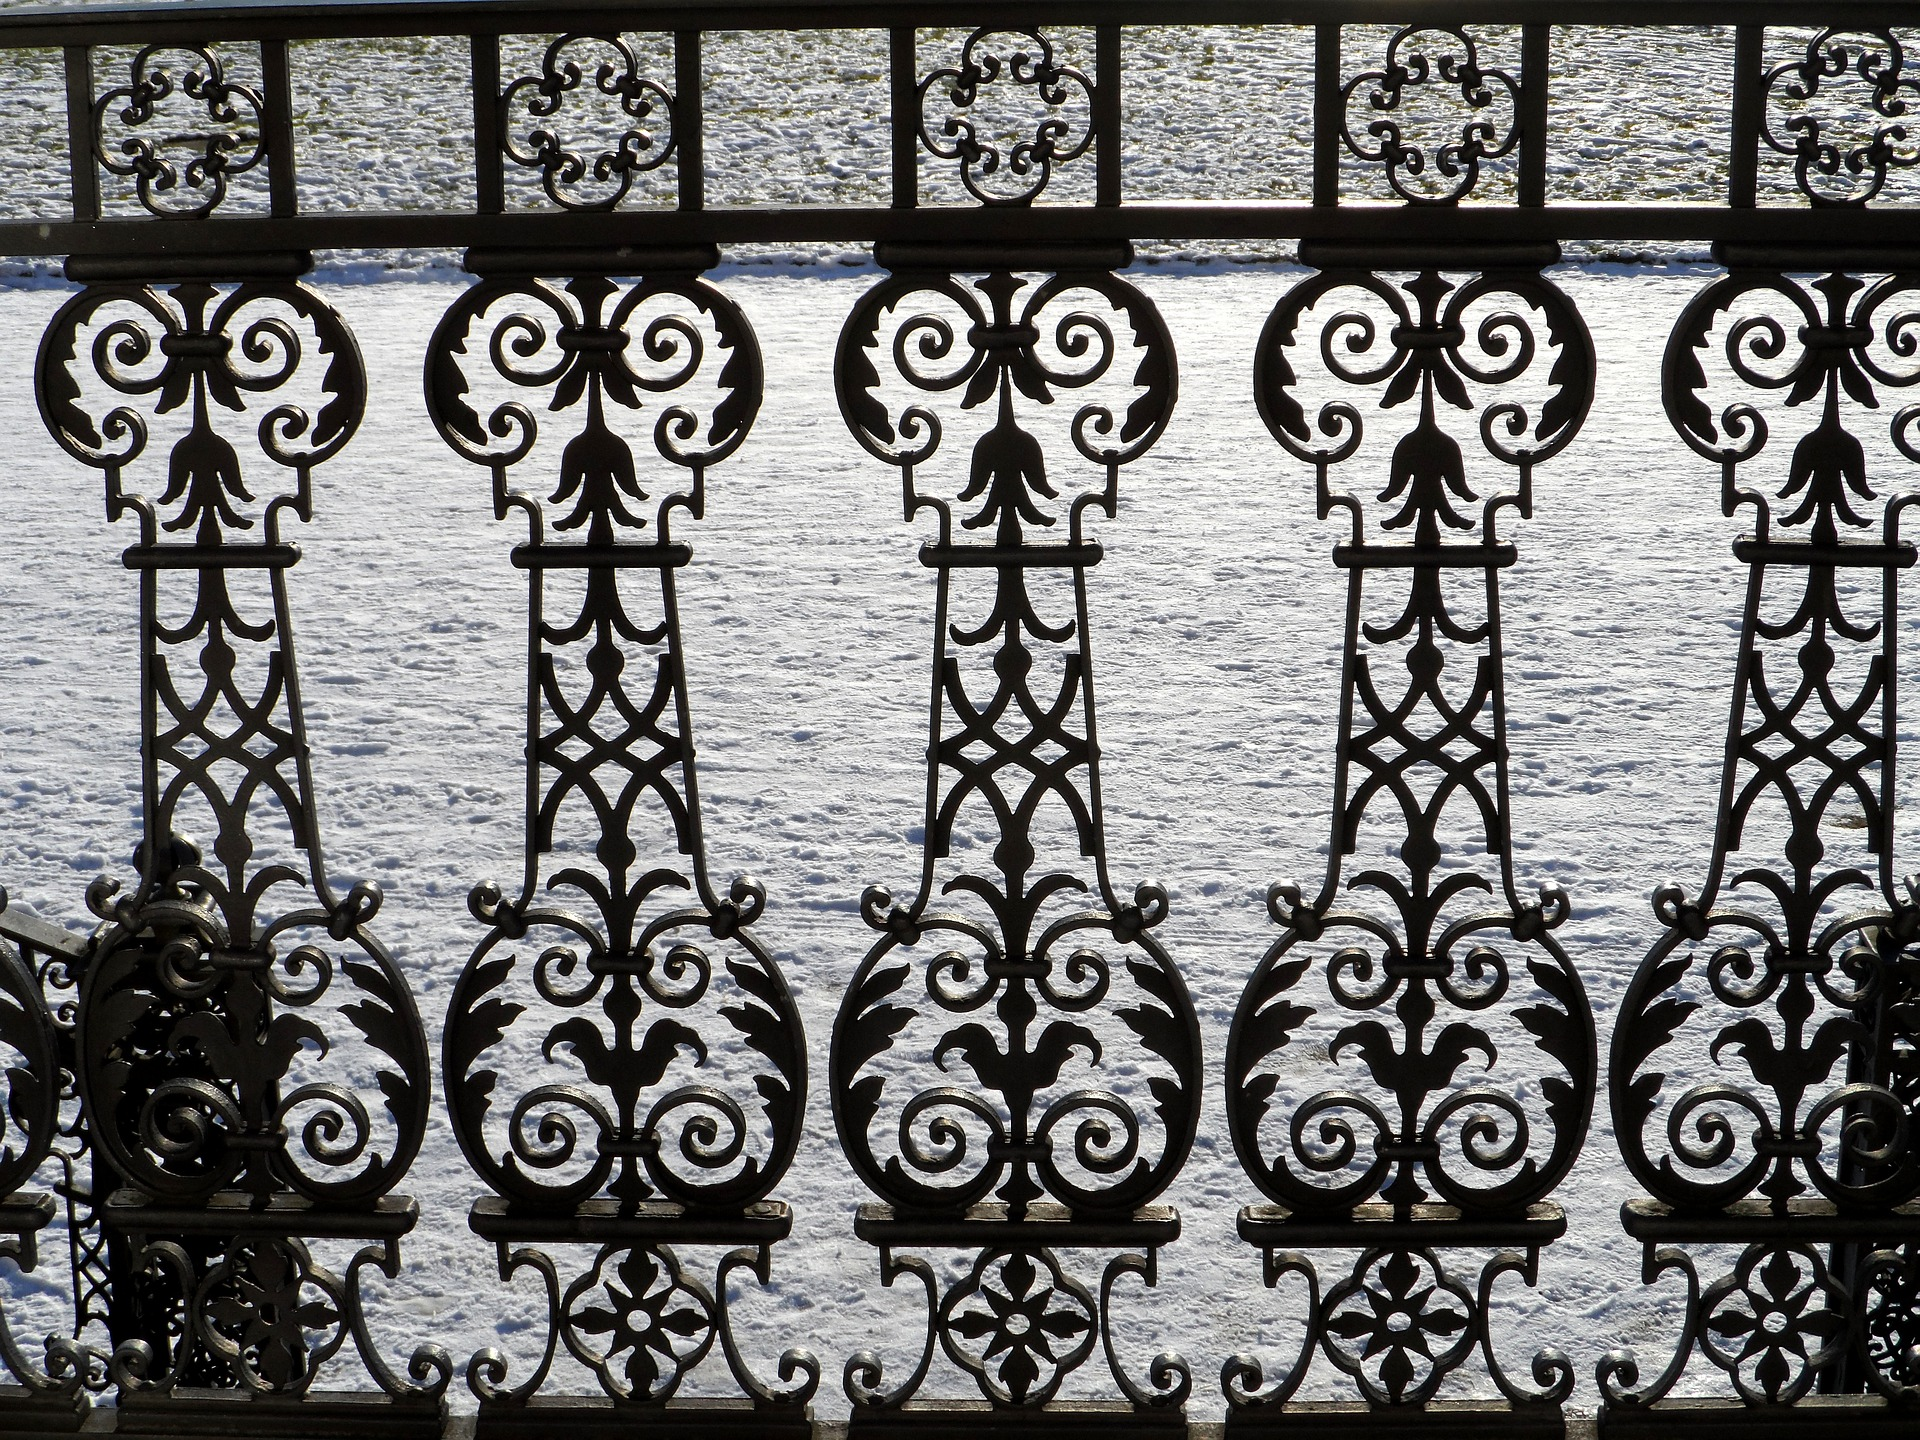 An ornate cast iron balustrade